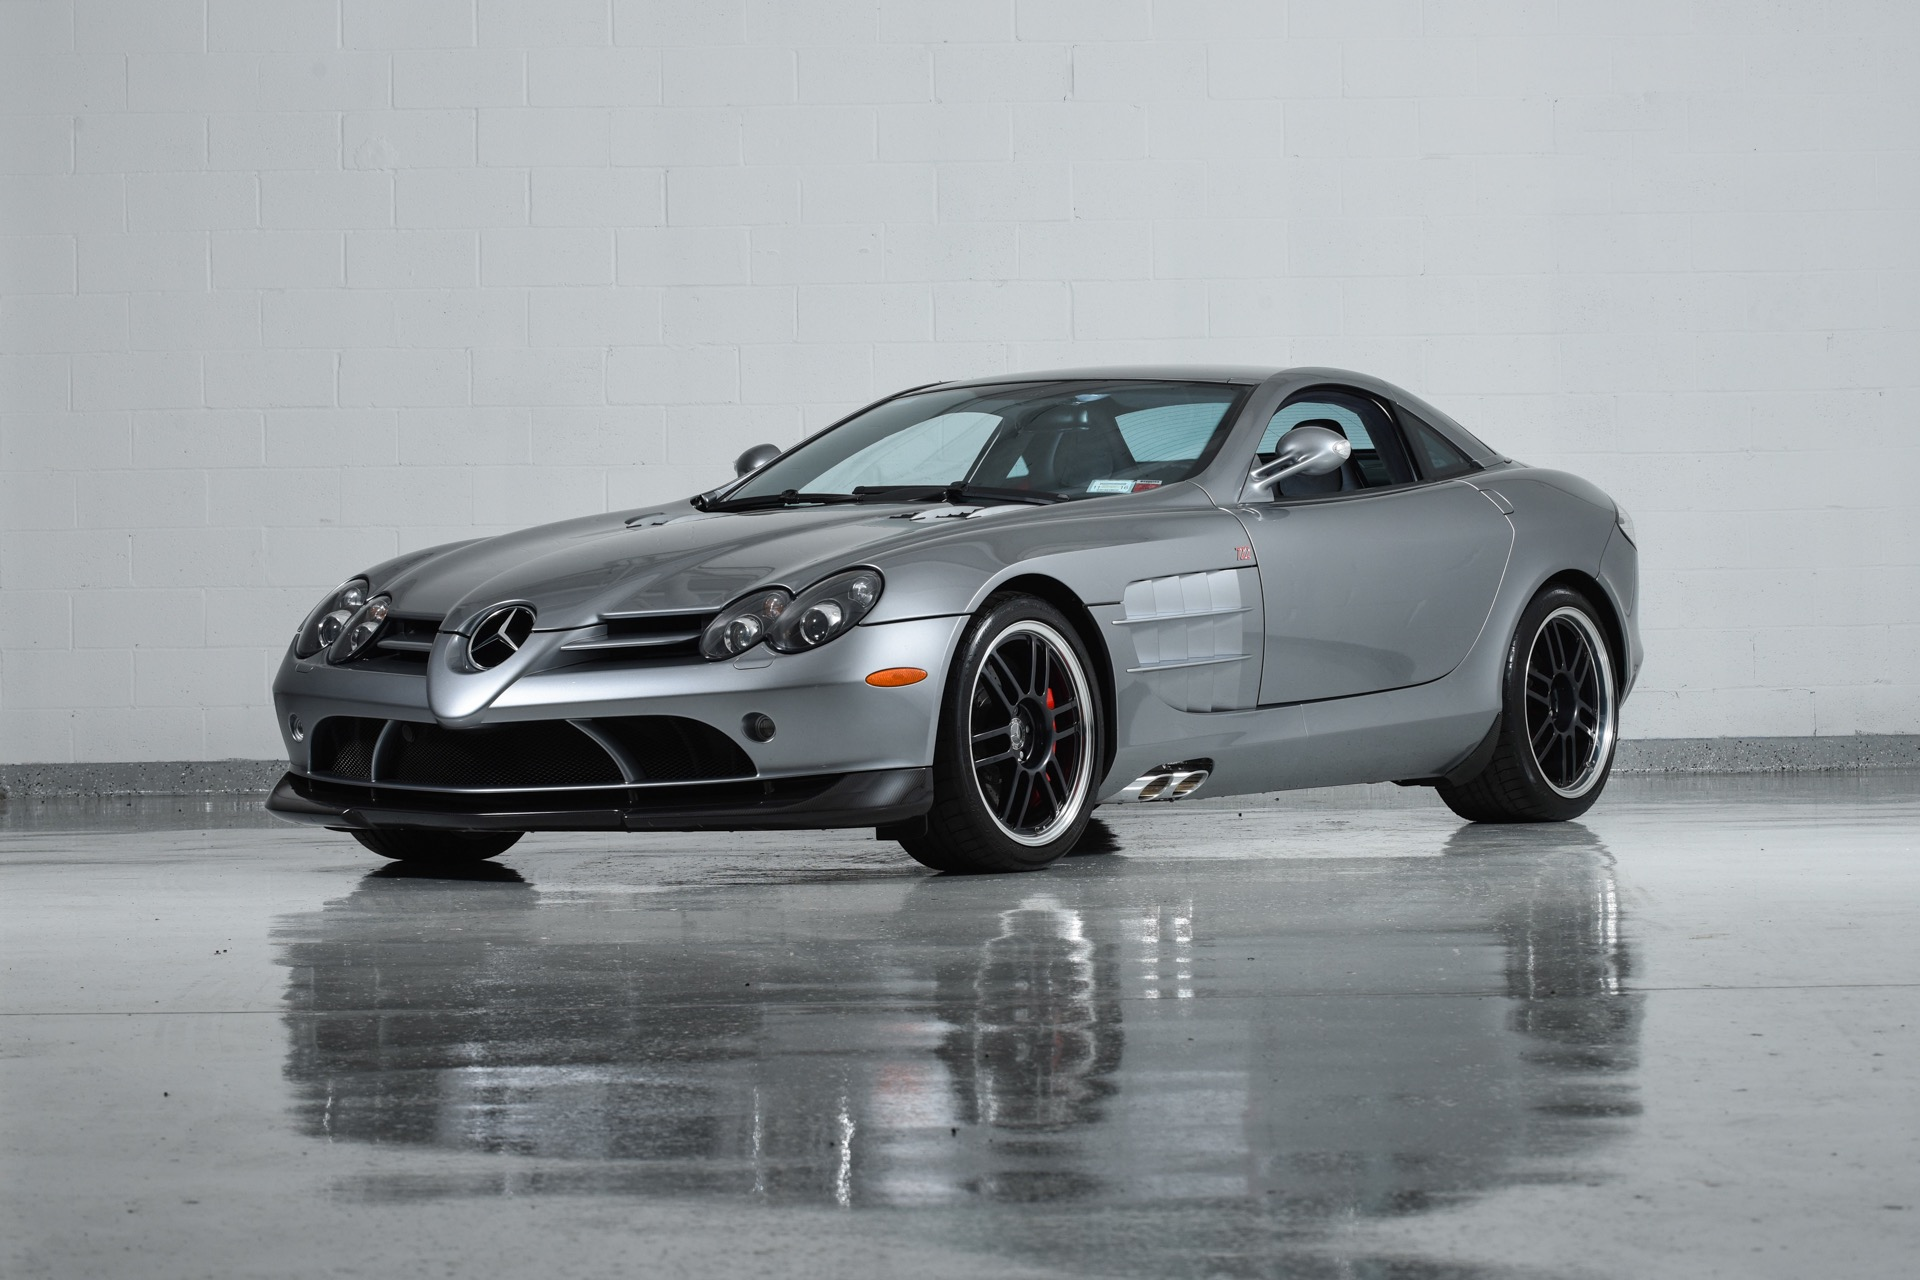 2007 mercedes benz slr mclaren 722 slr mclaren 722 edition motorcar classics exotic and. Black Bedroom Furniture Sets. Home Design Ideas